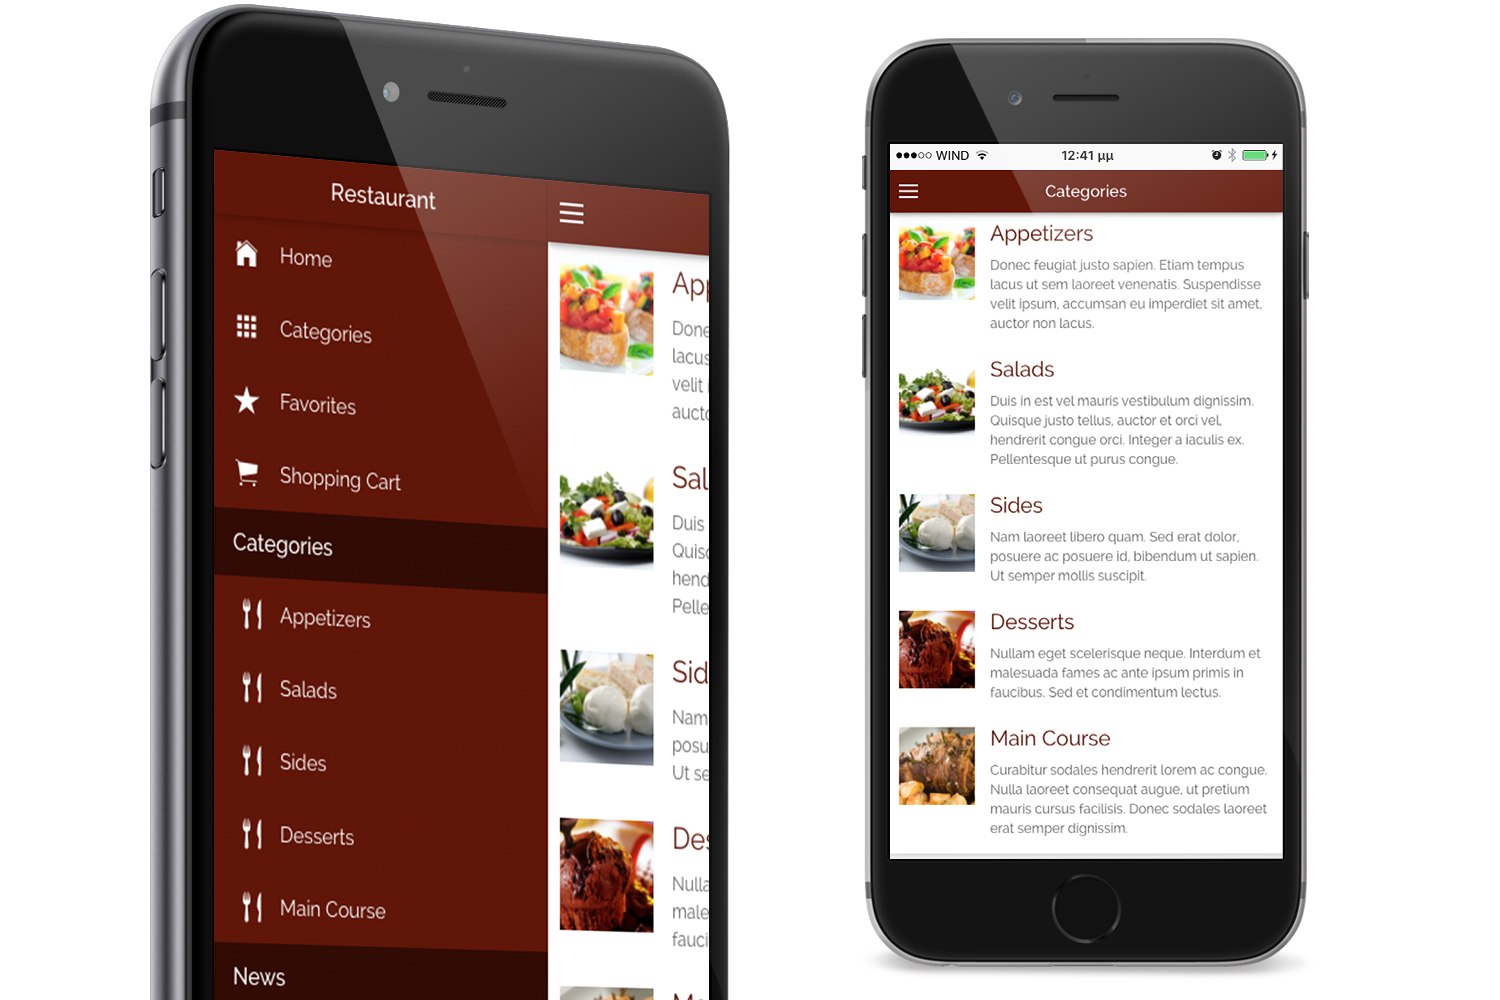 Restaurant Ionic Classy- Full Application with Firebase backend - 6